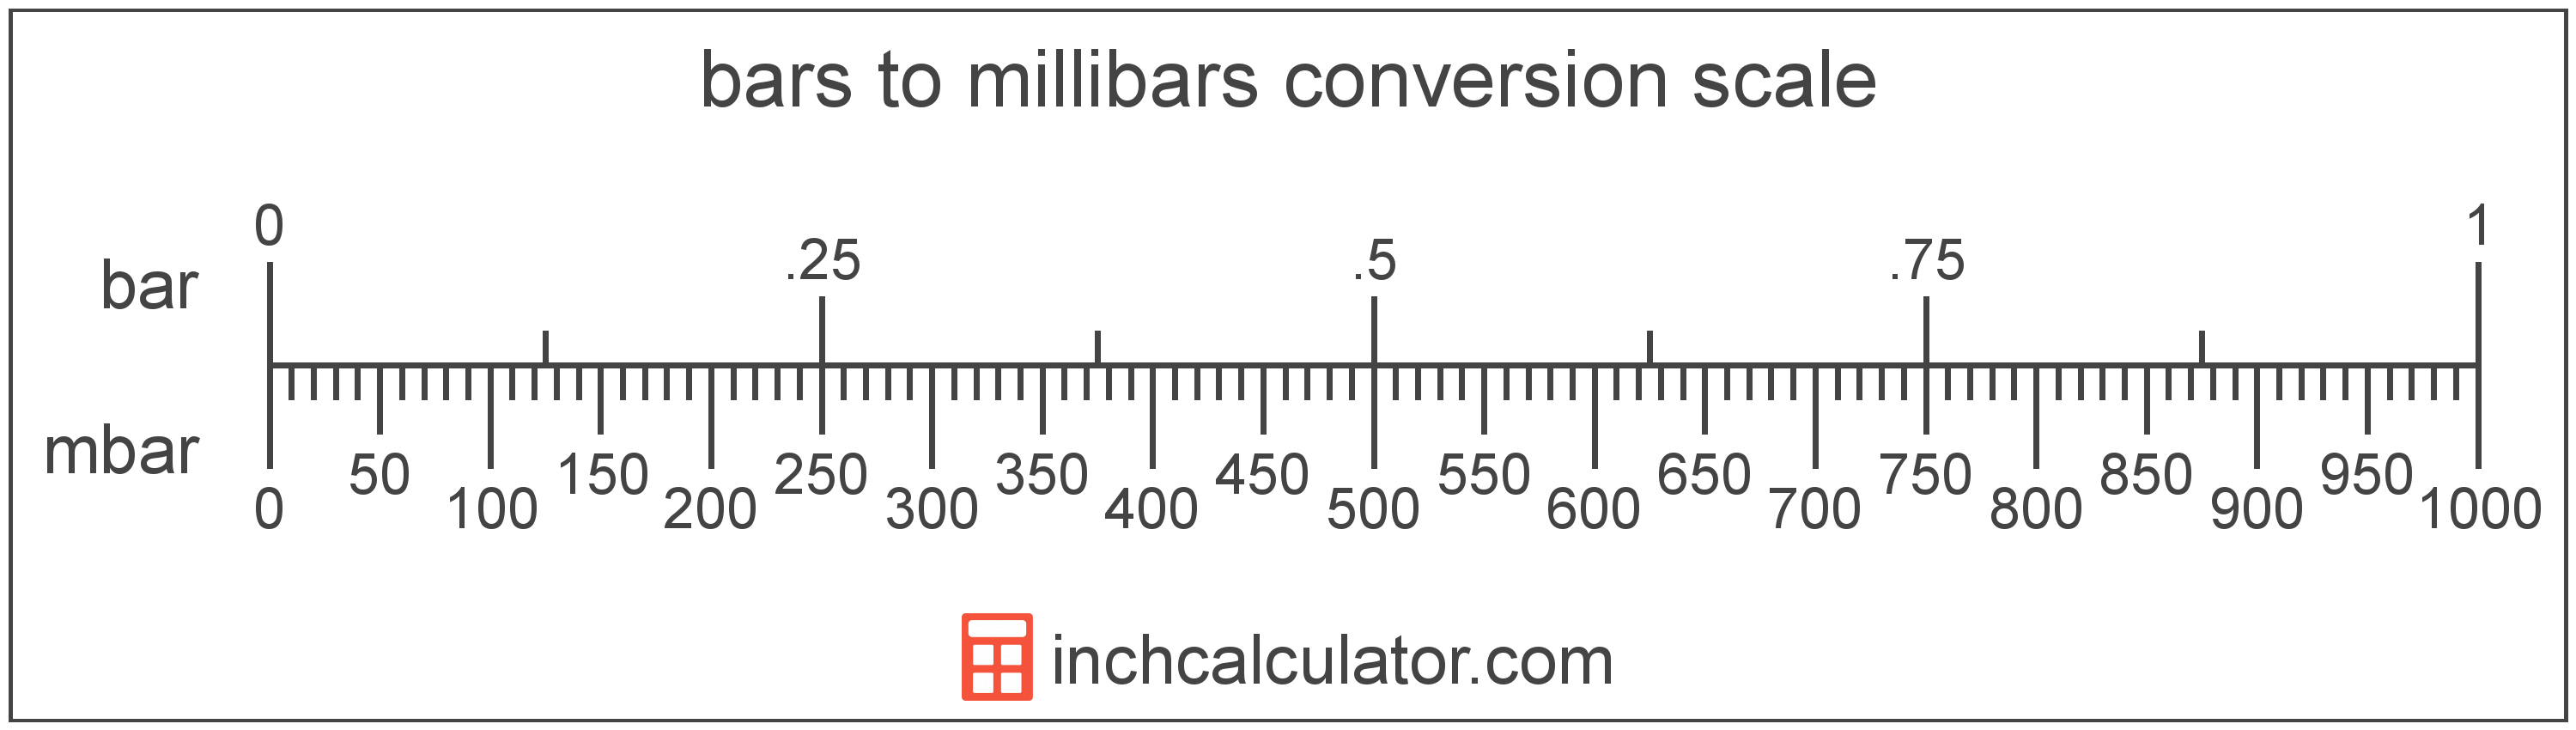 conversion scale showing millibars and equivalent bars pressure values